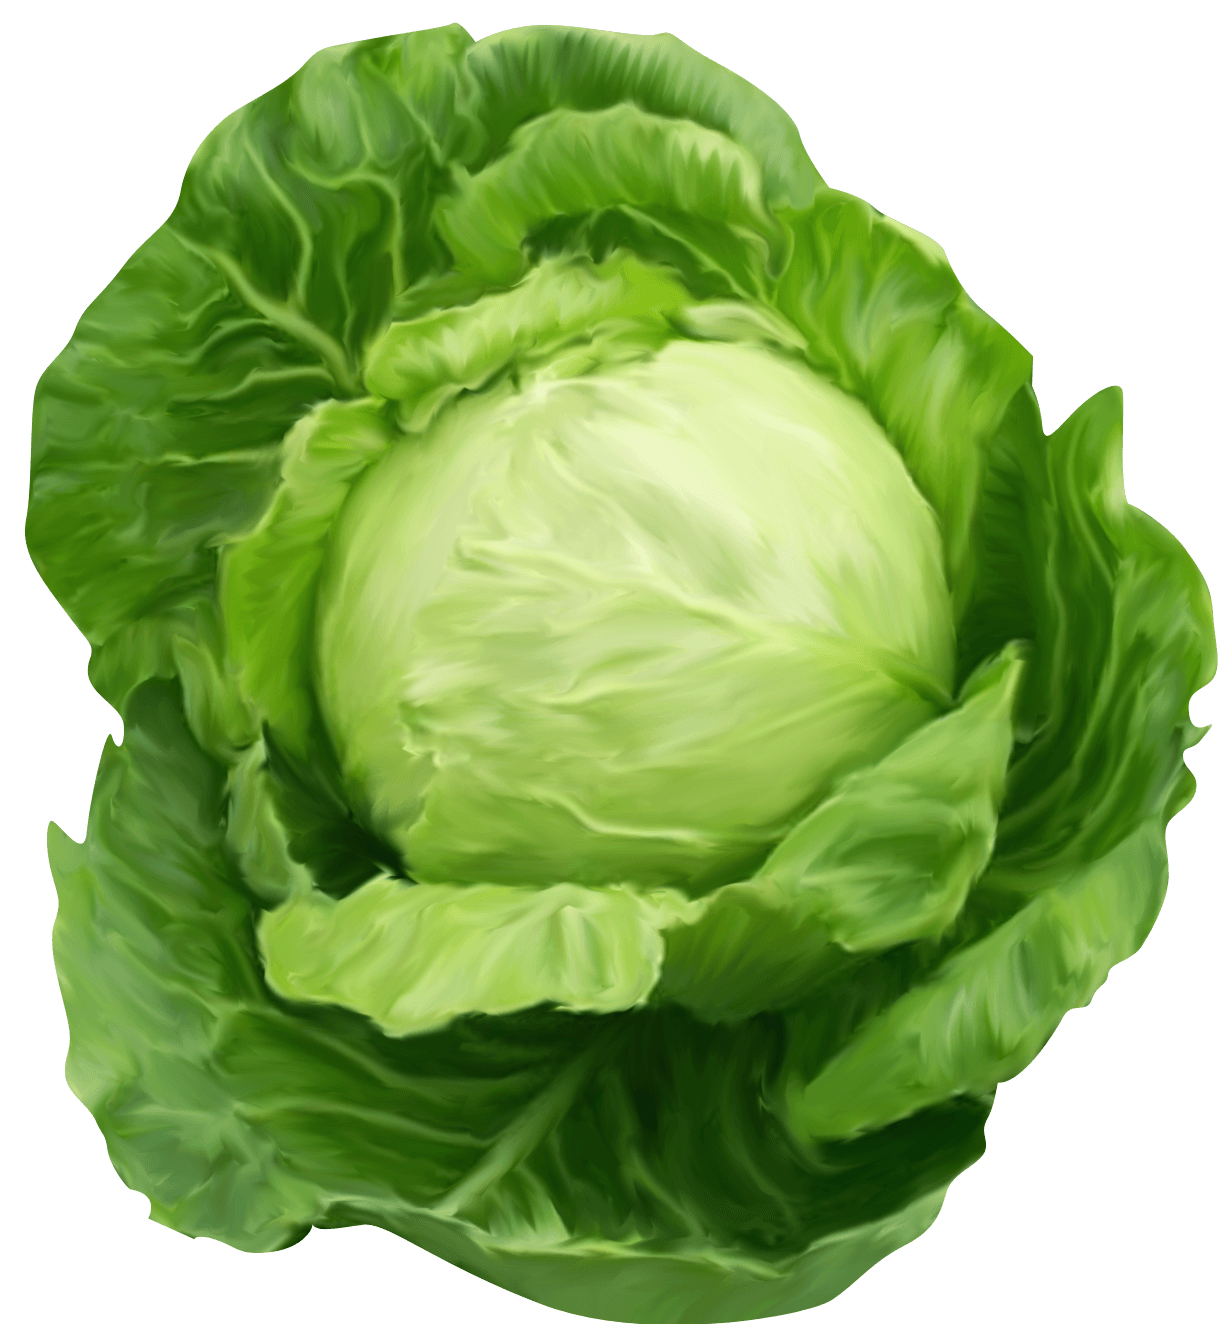 clip free download Health benefits of pinterest. Cabbage clipart letus.